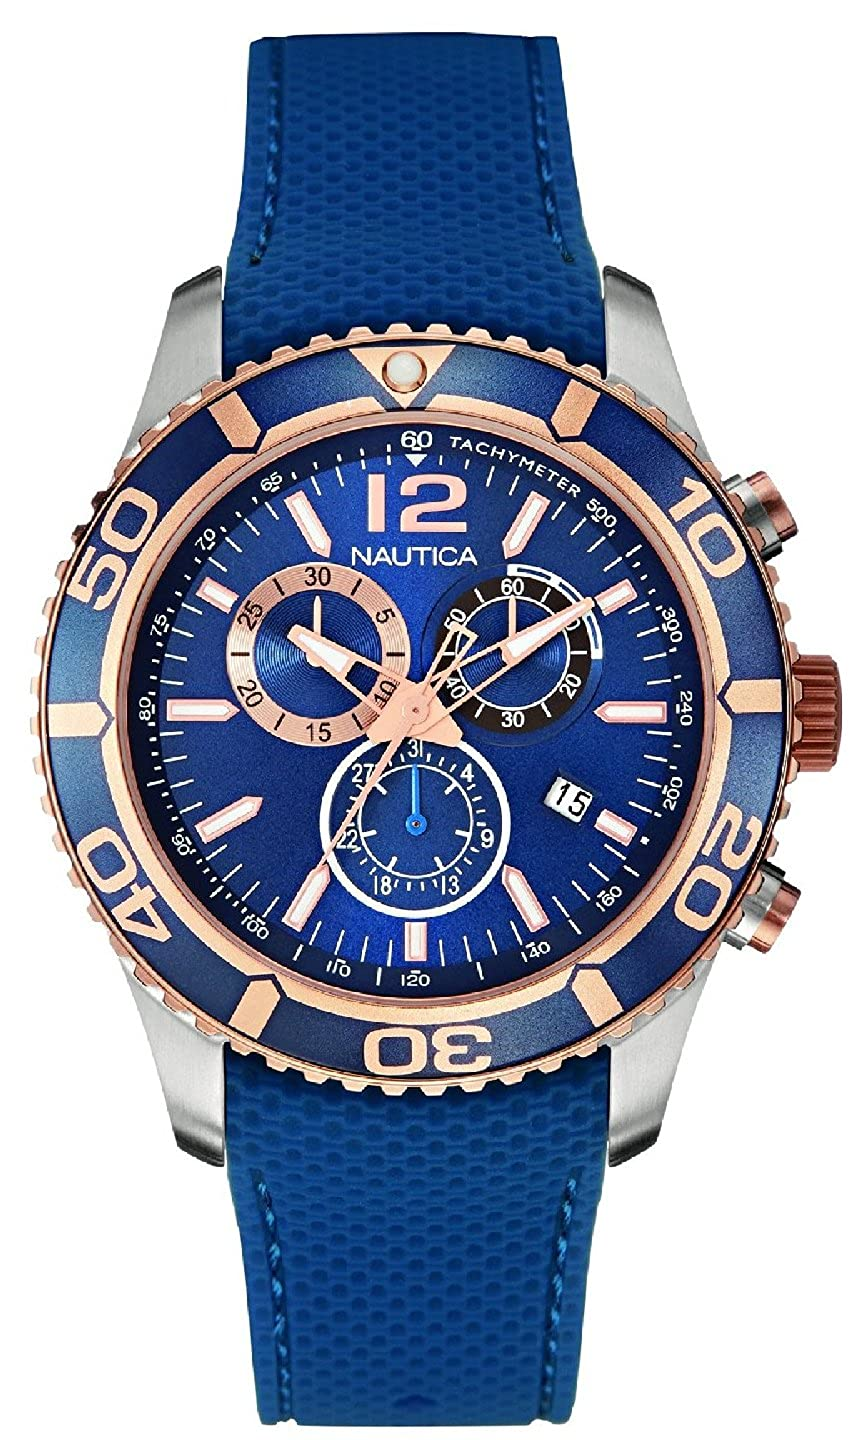 6bee9d646e1 Amazon.com  Nautica nst-09 Mens Analog Quartz Watch with Rubber Bracelet  NAI16502G  Watches